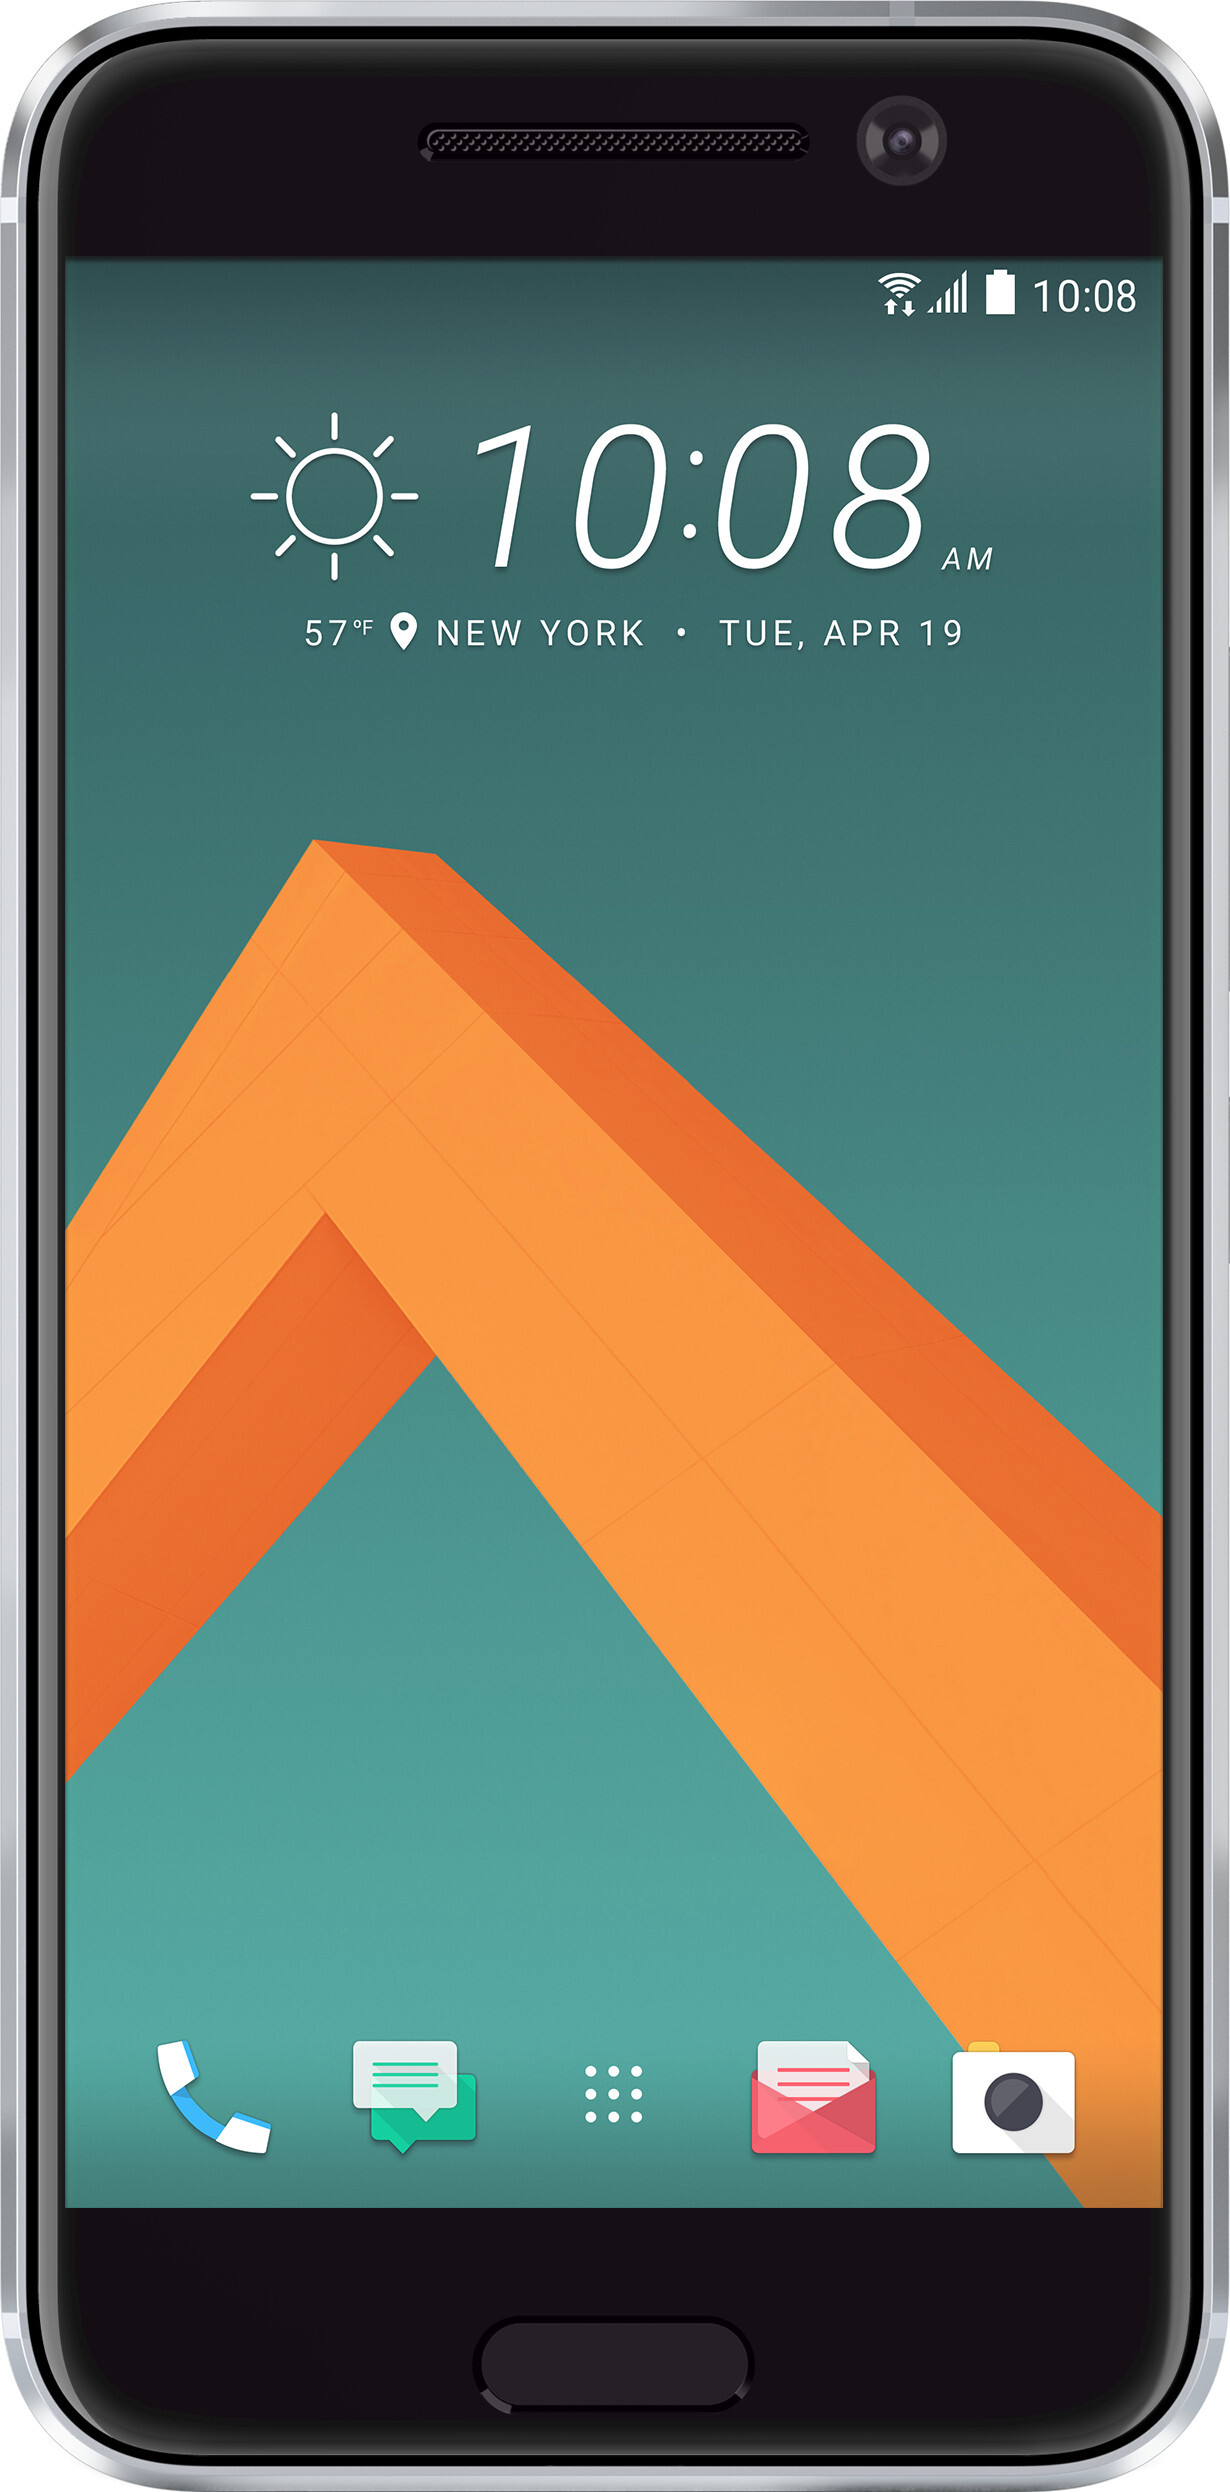 HTC 10 Size - Real life visualization and comparison